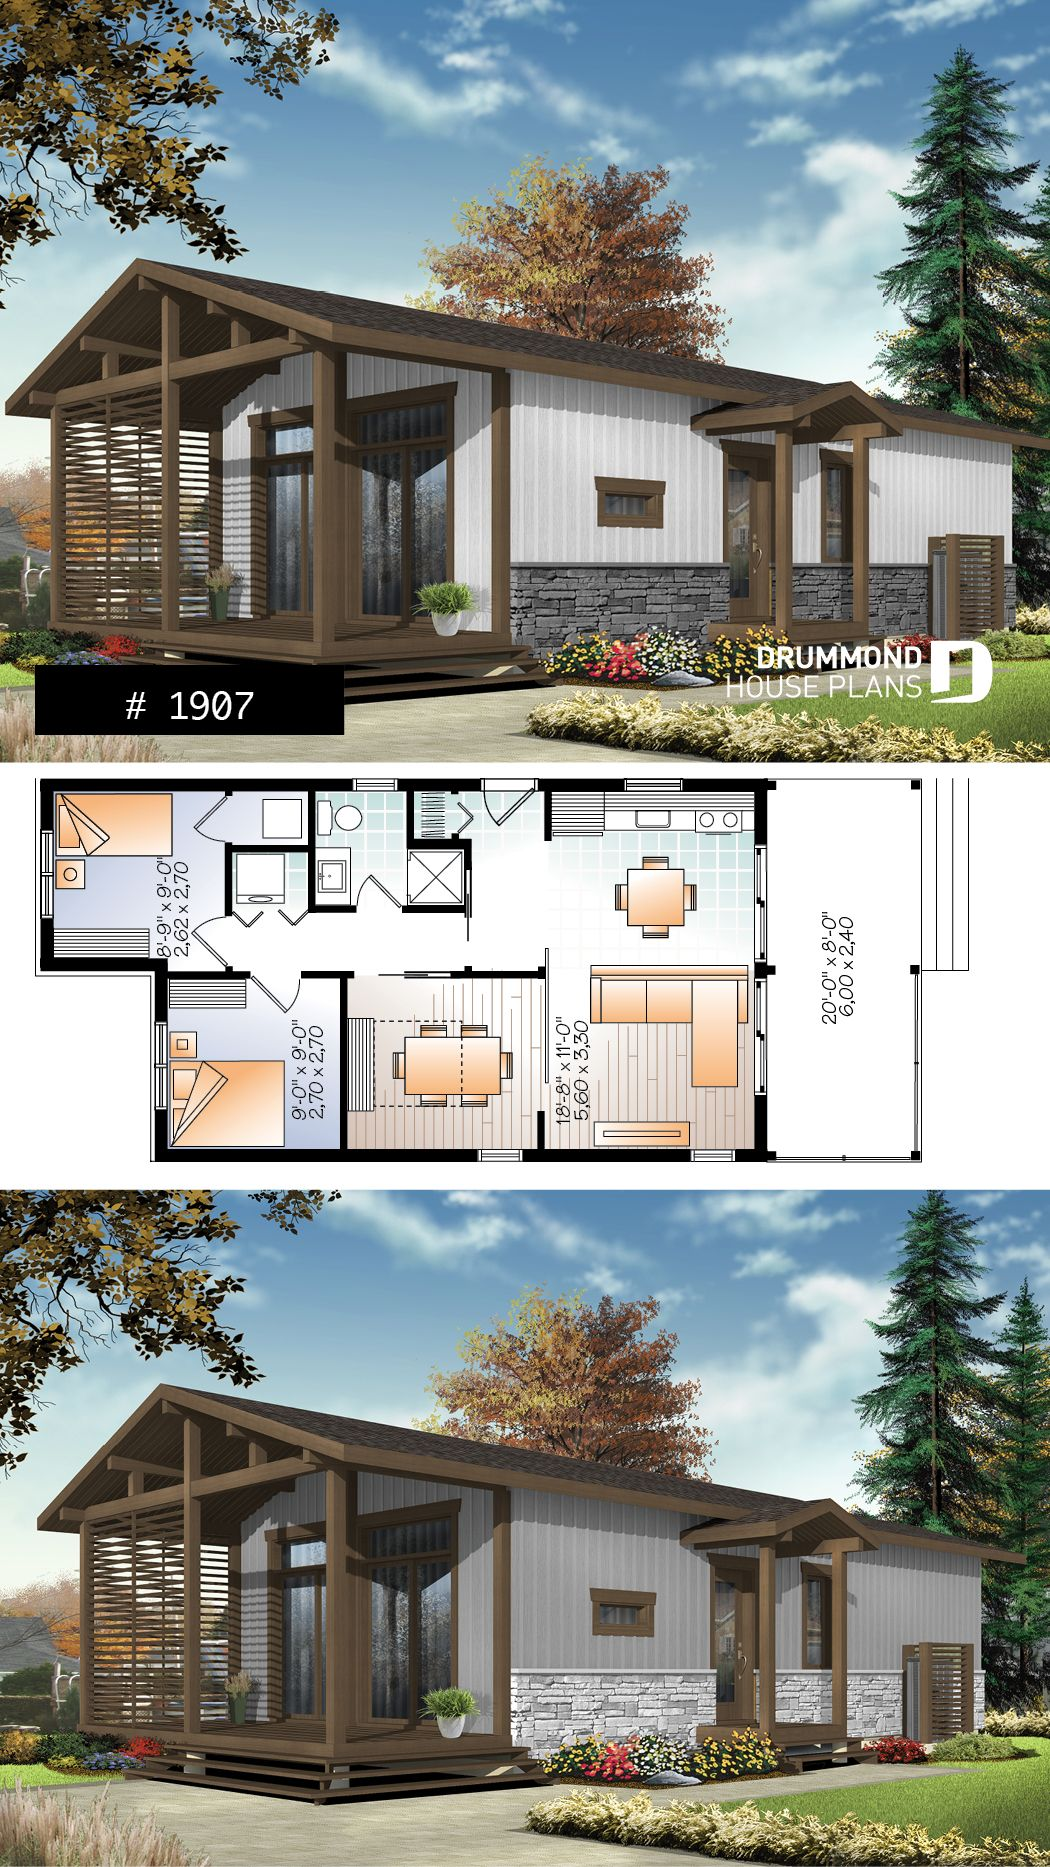 Modern rustic 700 sq ft tiny small house plan very versatile 3 bedrooms large covered deck